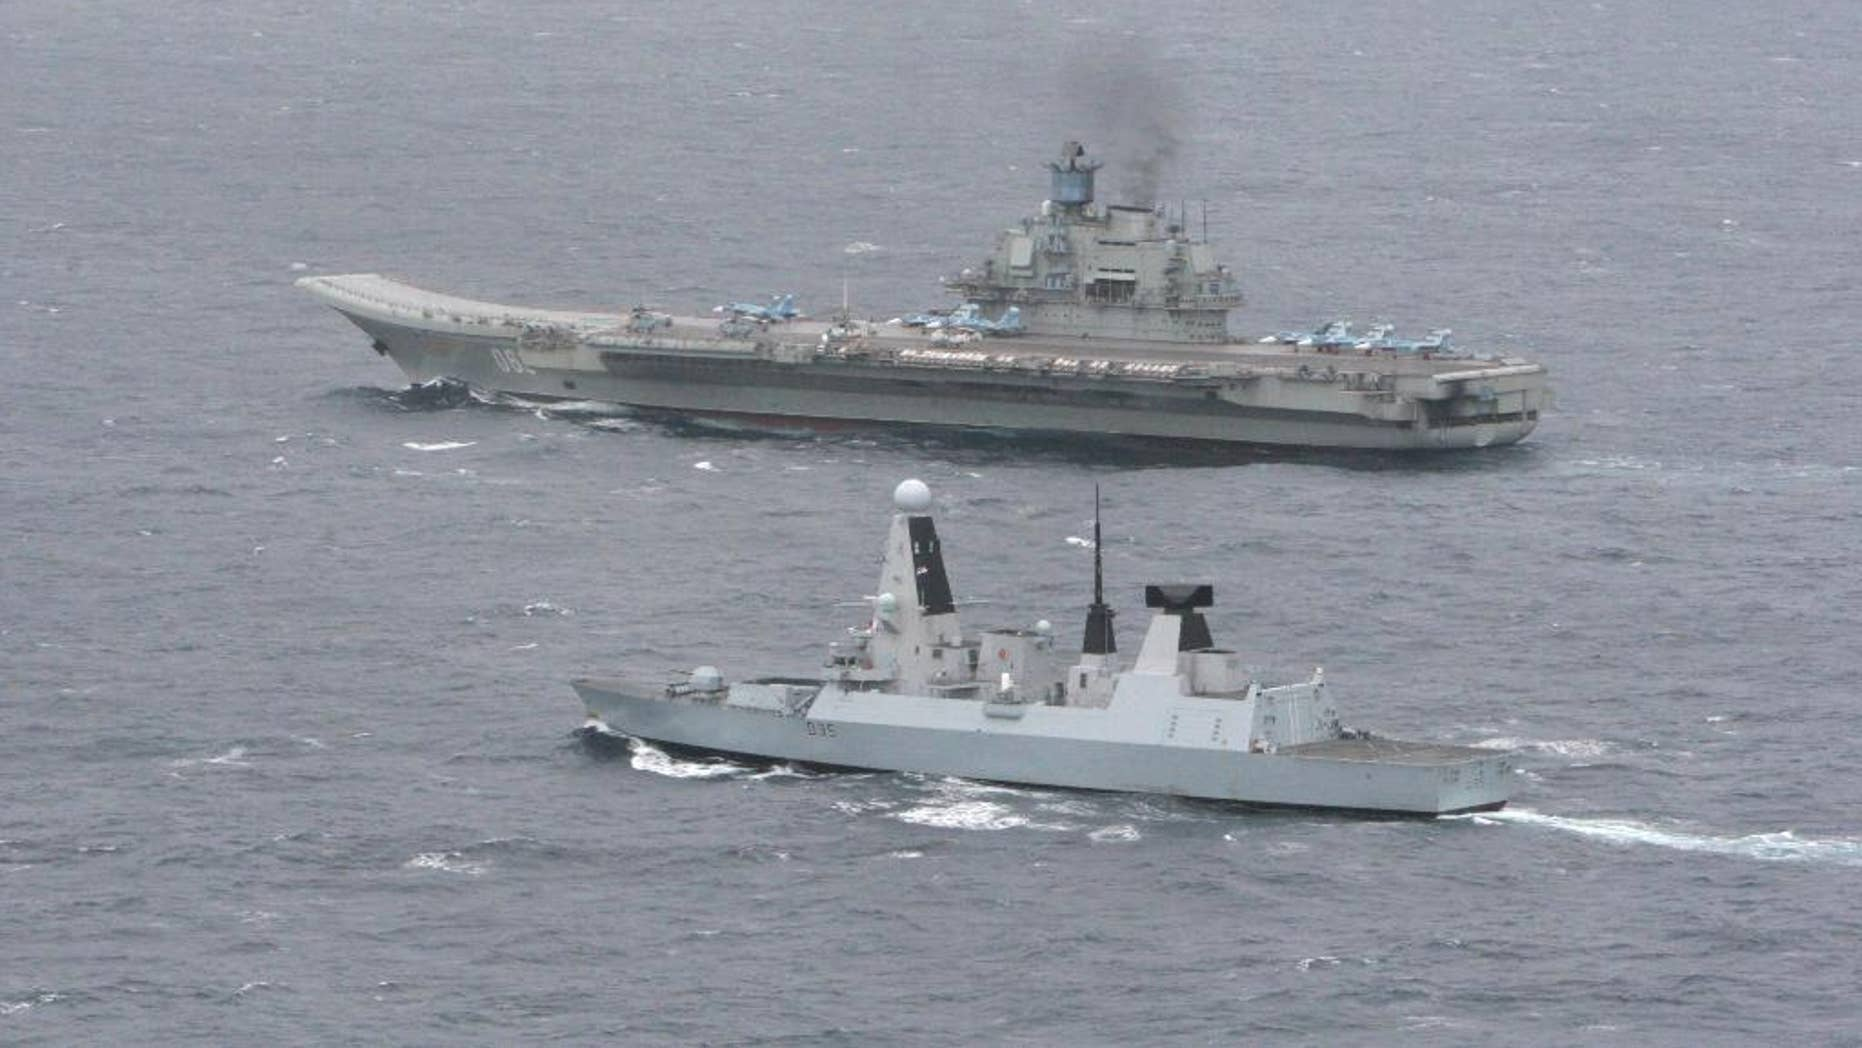 """An undated aerial photo made available by Britain's Ministry of Defence, Thursday, May 8, 2014 showing HMS Dragon, foreground, with the Russian aircraft carrier 'Admiral Kuznetsov' in the English Channel. The Royal Navy warship met and tracked a Russian task force group as it entered the English Channel in an operation that the Ministry of Defense repeatedly stressed was a routine matter. HMS Dragon, a Type 45 destroyer, monitored the movement of the seven-strong Russian group led by the aircraft carrier Admiral Kuznetsov. The navy says that once the ships spotted each other they """"sailed close by as a standard 'meet and greet.' '' (AP Photo/Ministry of Defence)"""